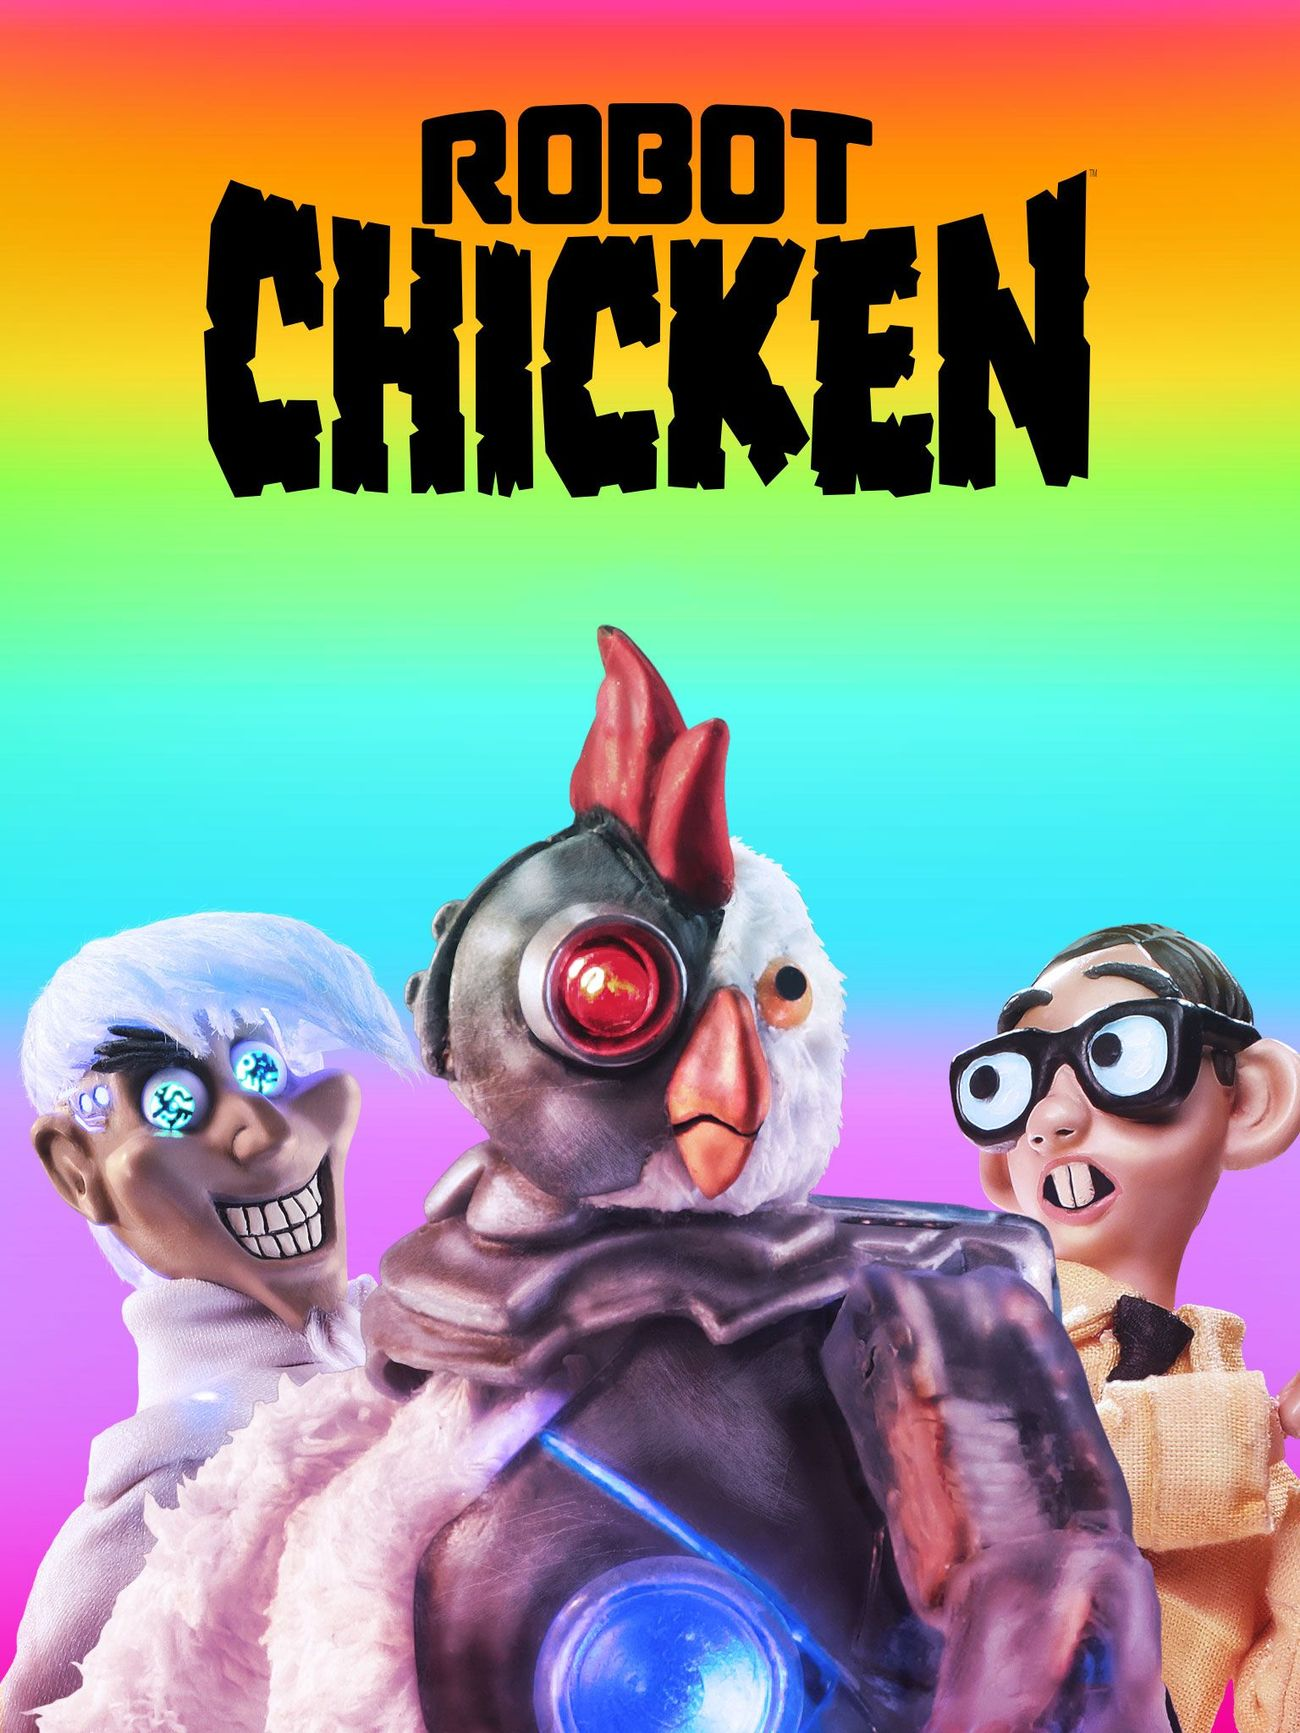 ROBOT CHICKEN   Maisie voices several characters in this stop motion sketch show    Click for more